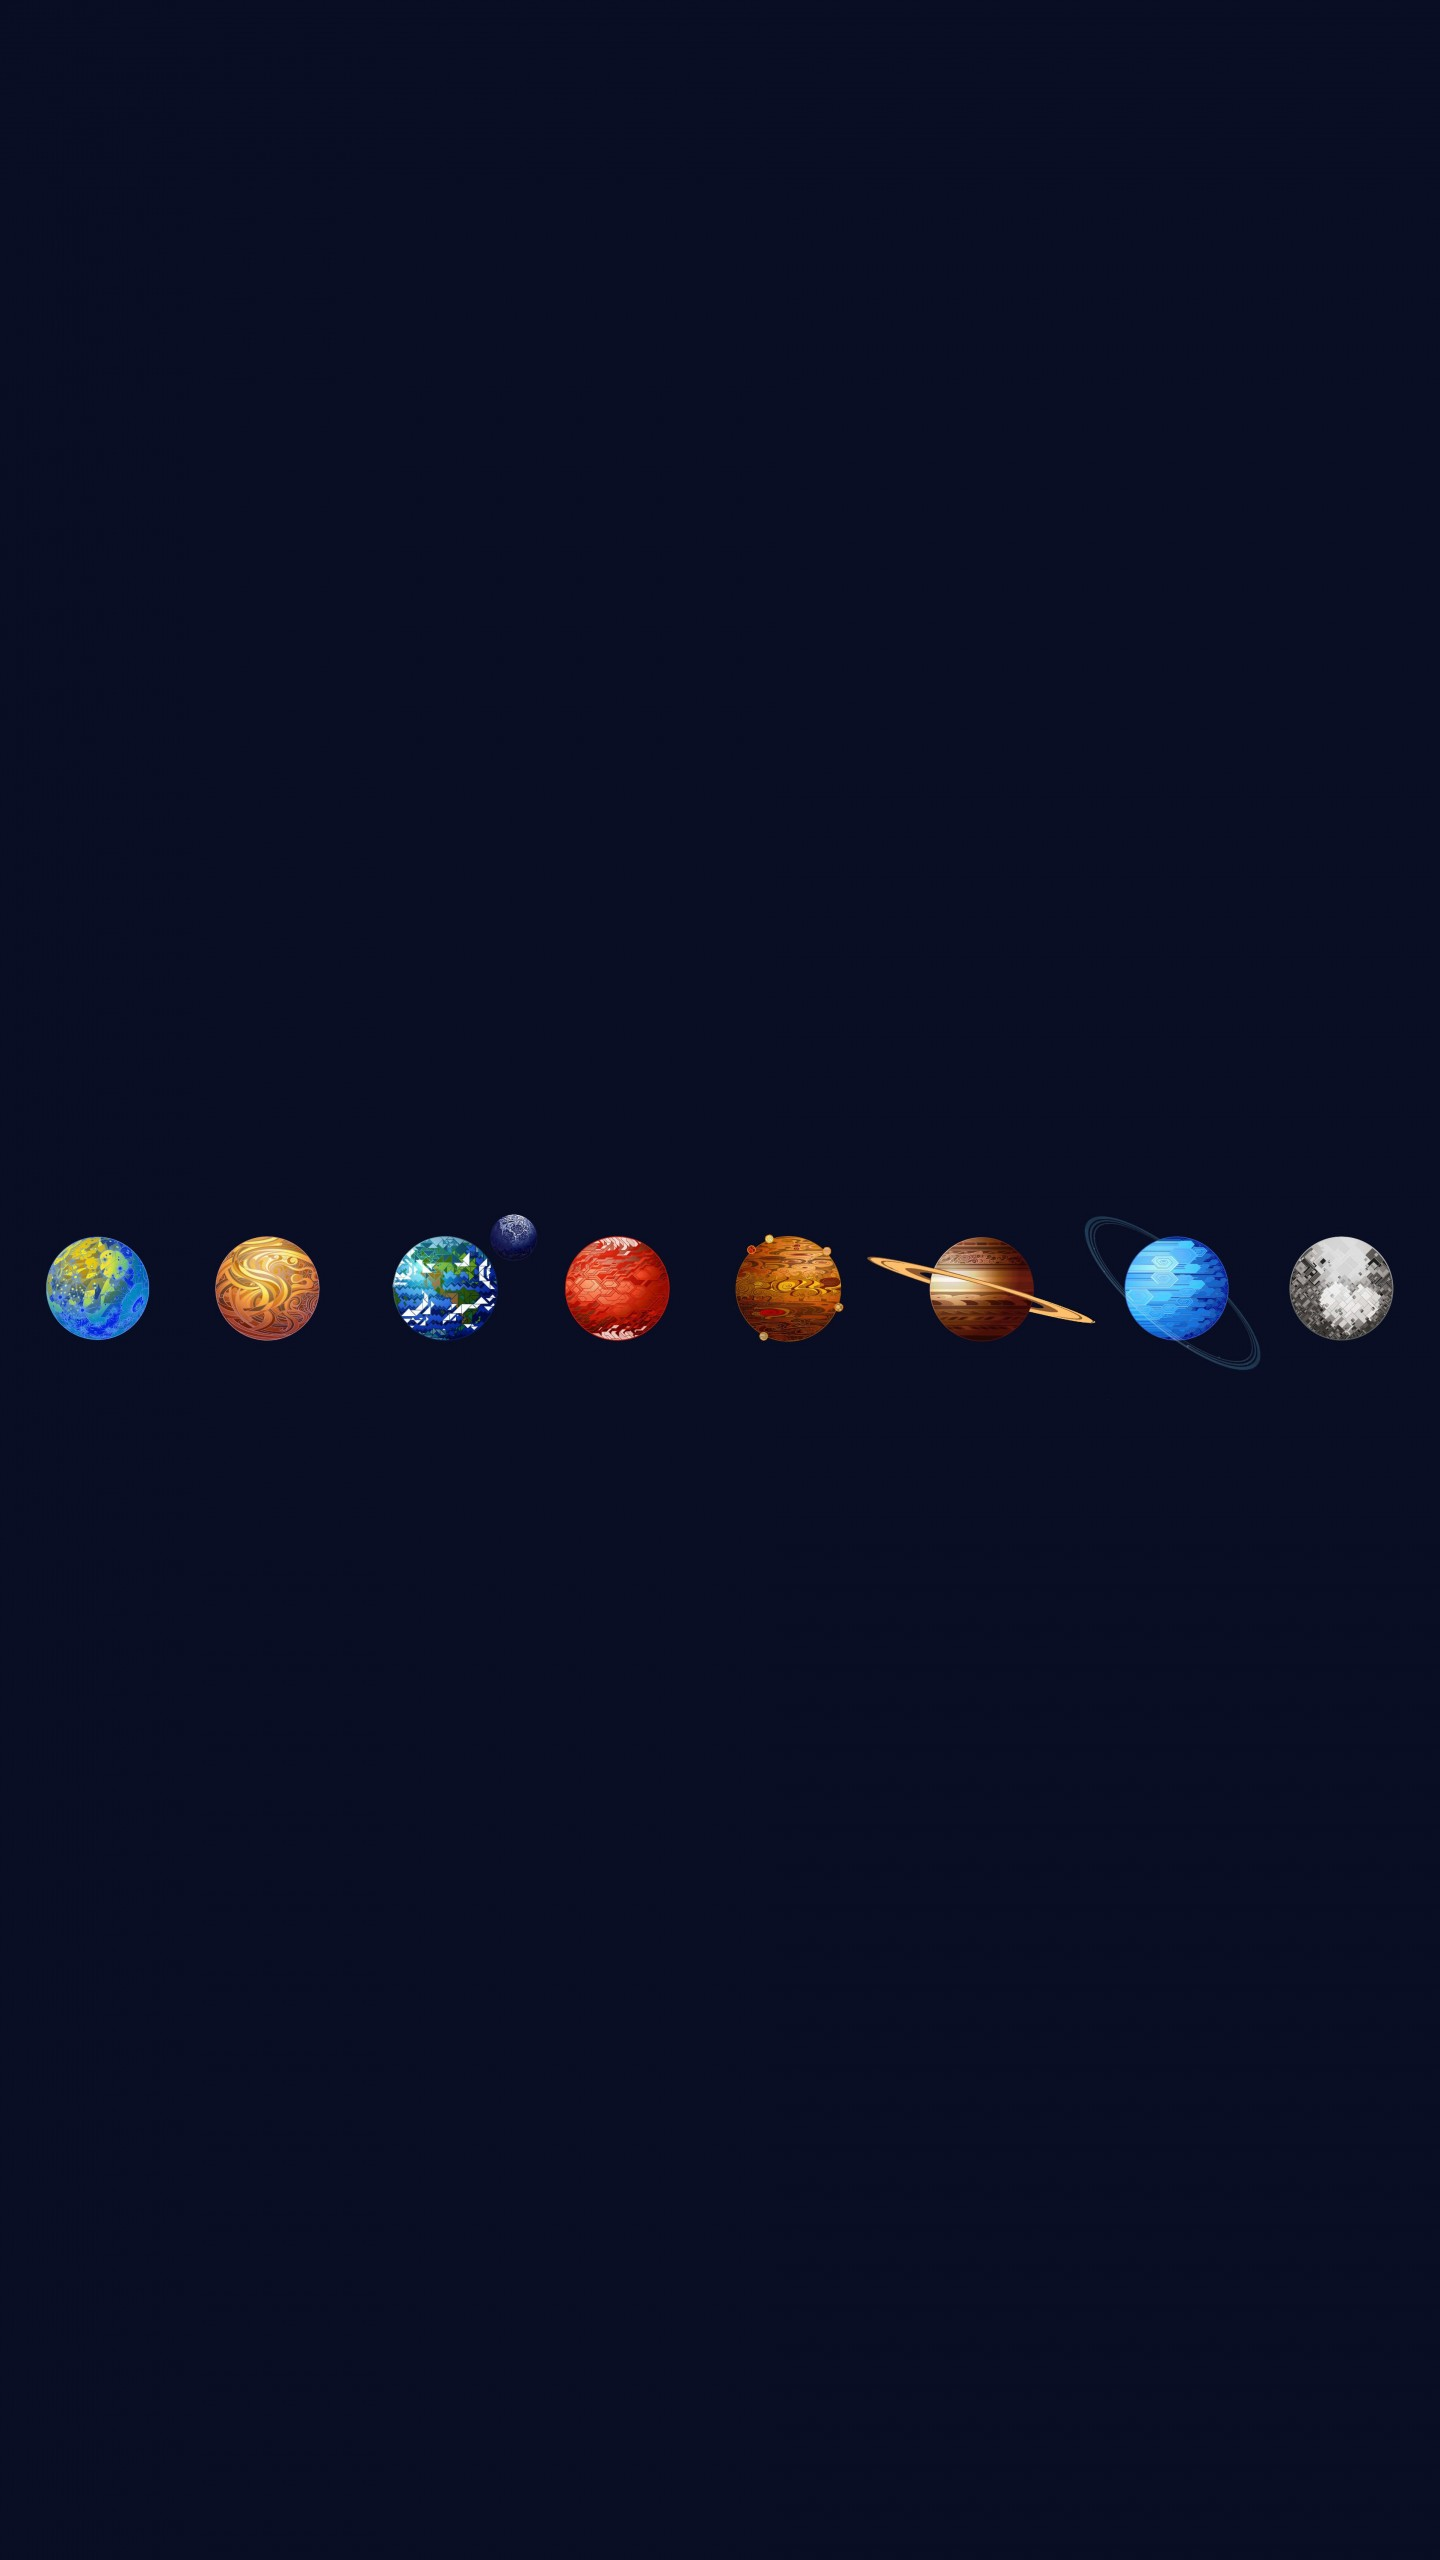 Solar System Wallpaper for SAMSUNG Galaxy Note 4